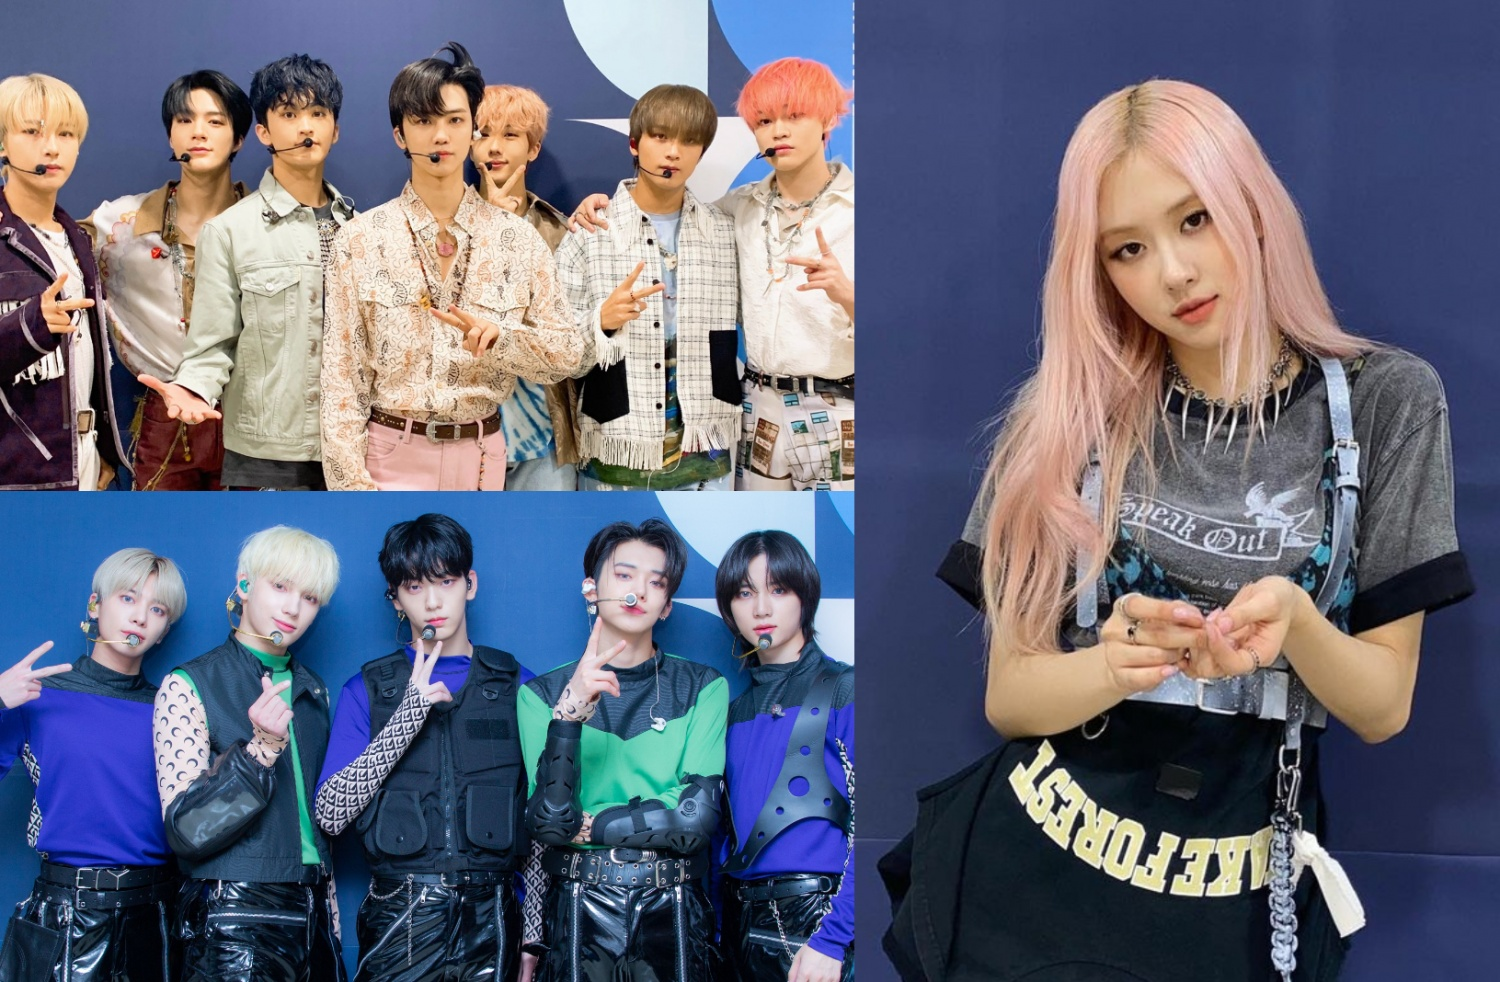 Gaon Chart Album Sales in the First Half of 2021